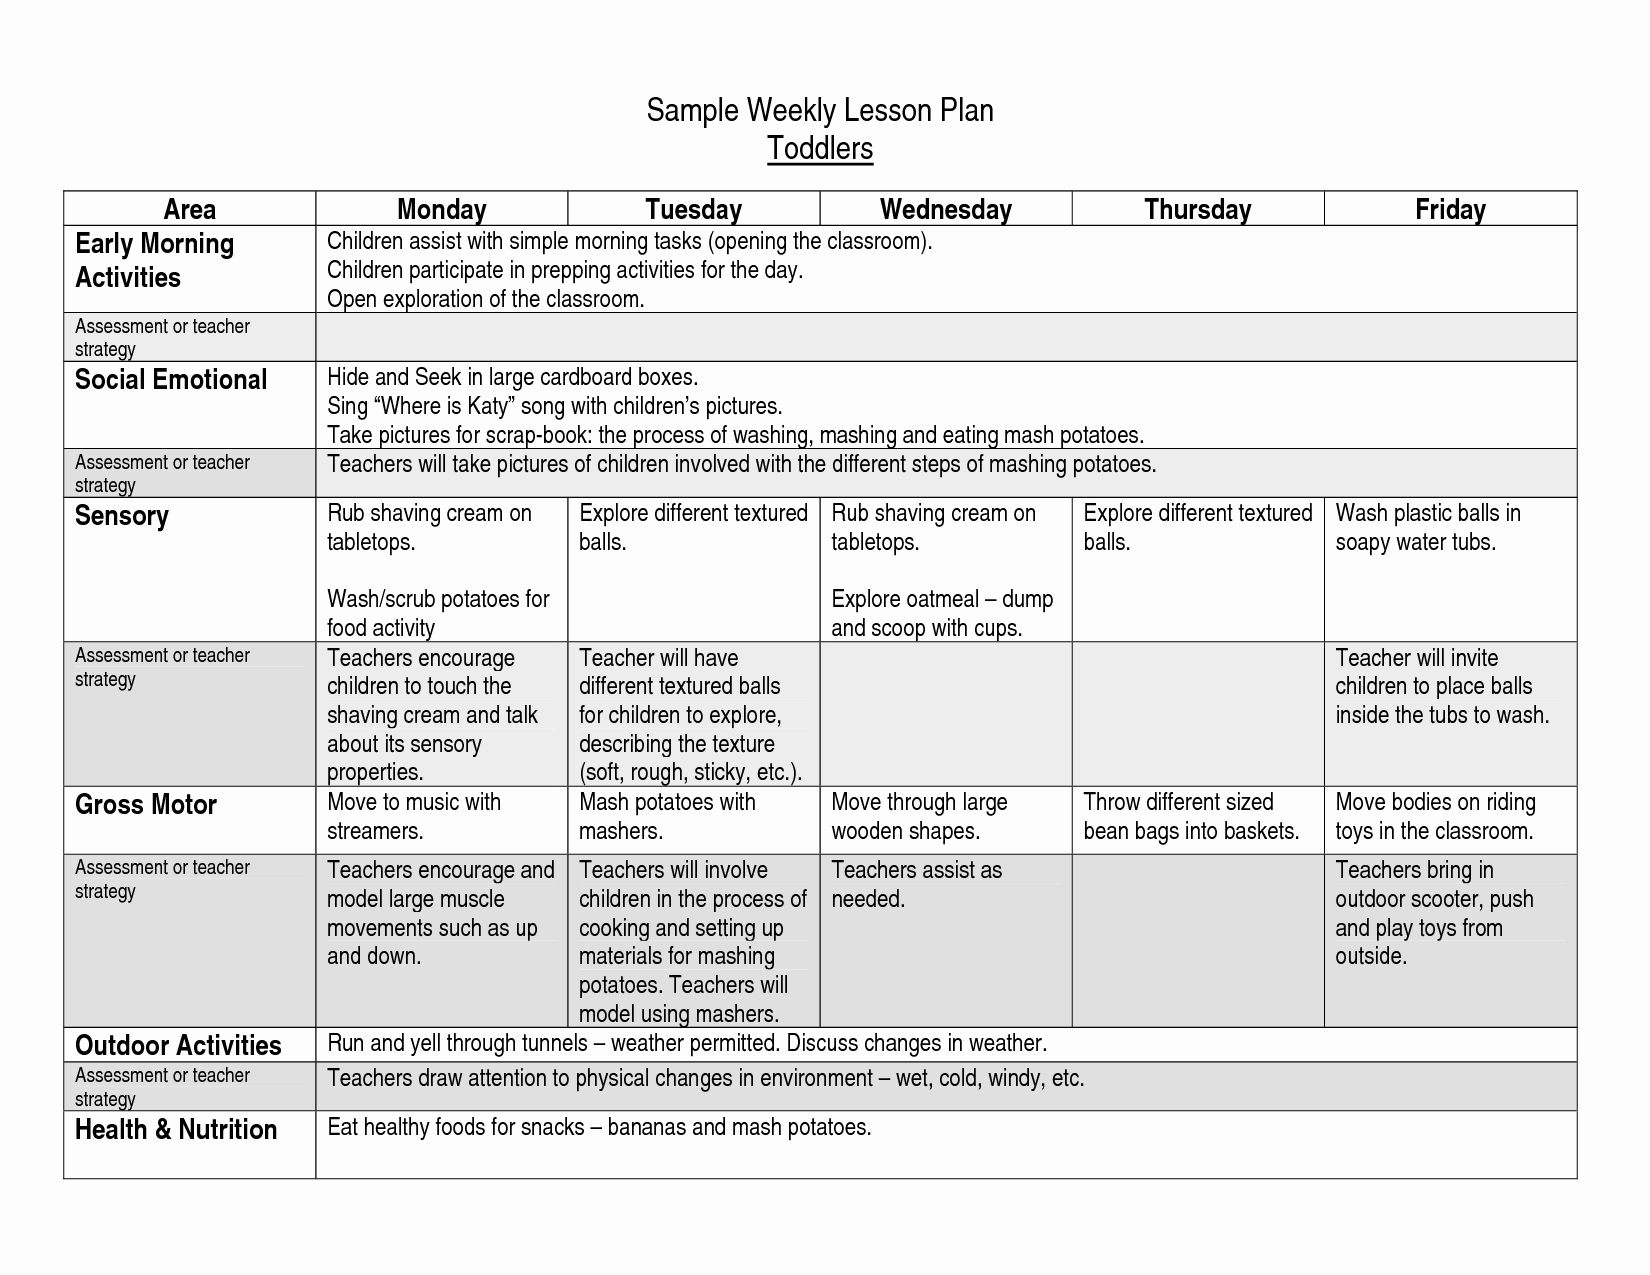 Free Weekly Lesson Plan Template Fresh Download Free Weekly Lesson Plan Template Lots Of Free